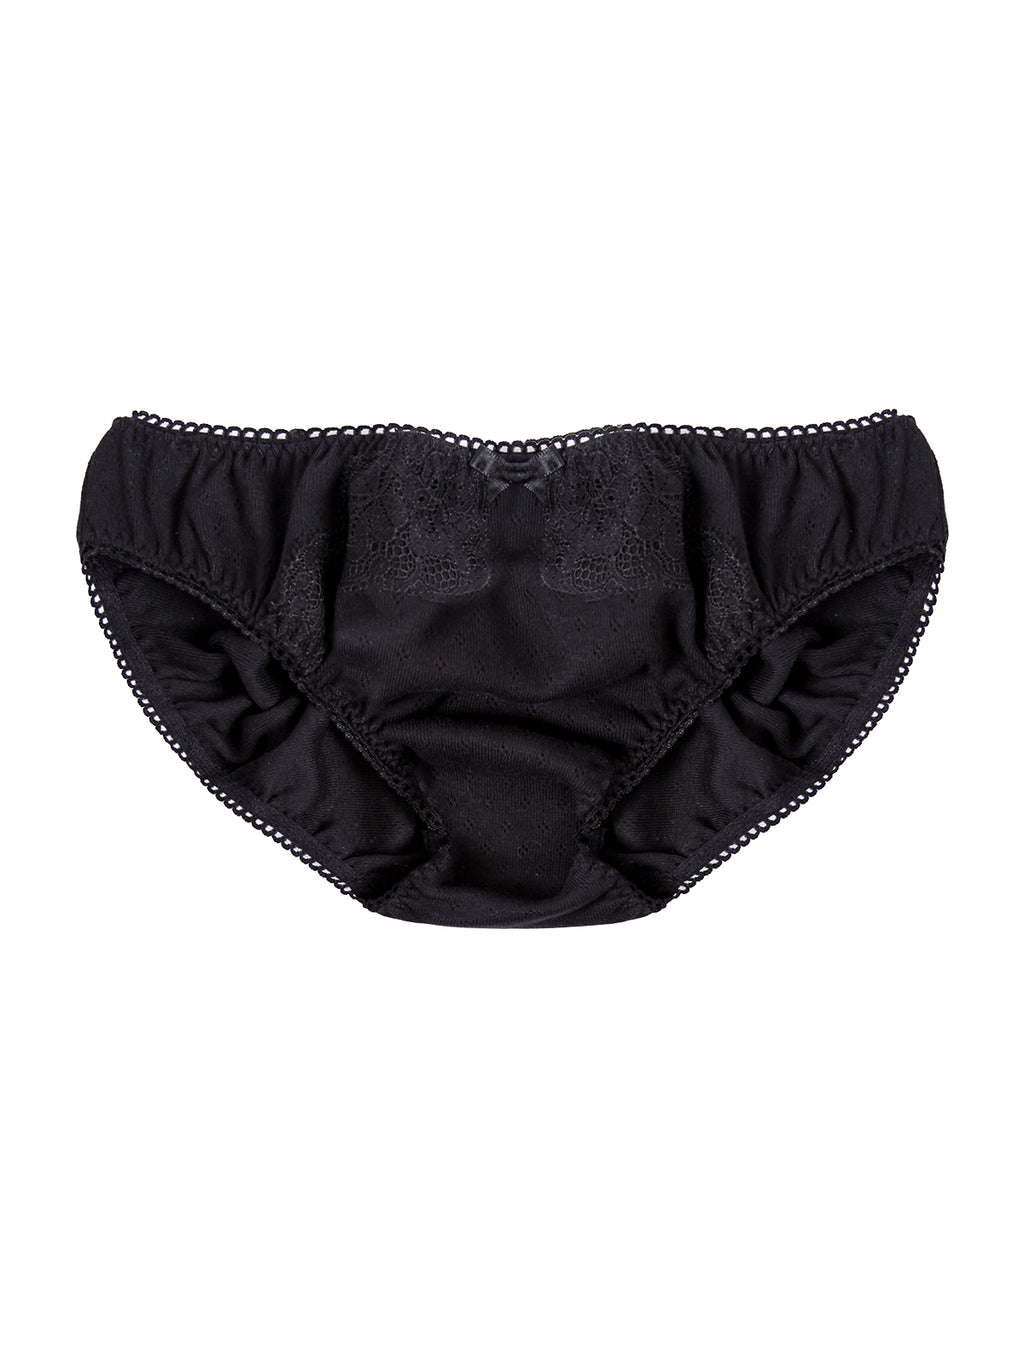 Eva Black Organic Cotton Pointelle Jersey Knicker by Ayten Gasson